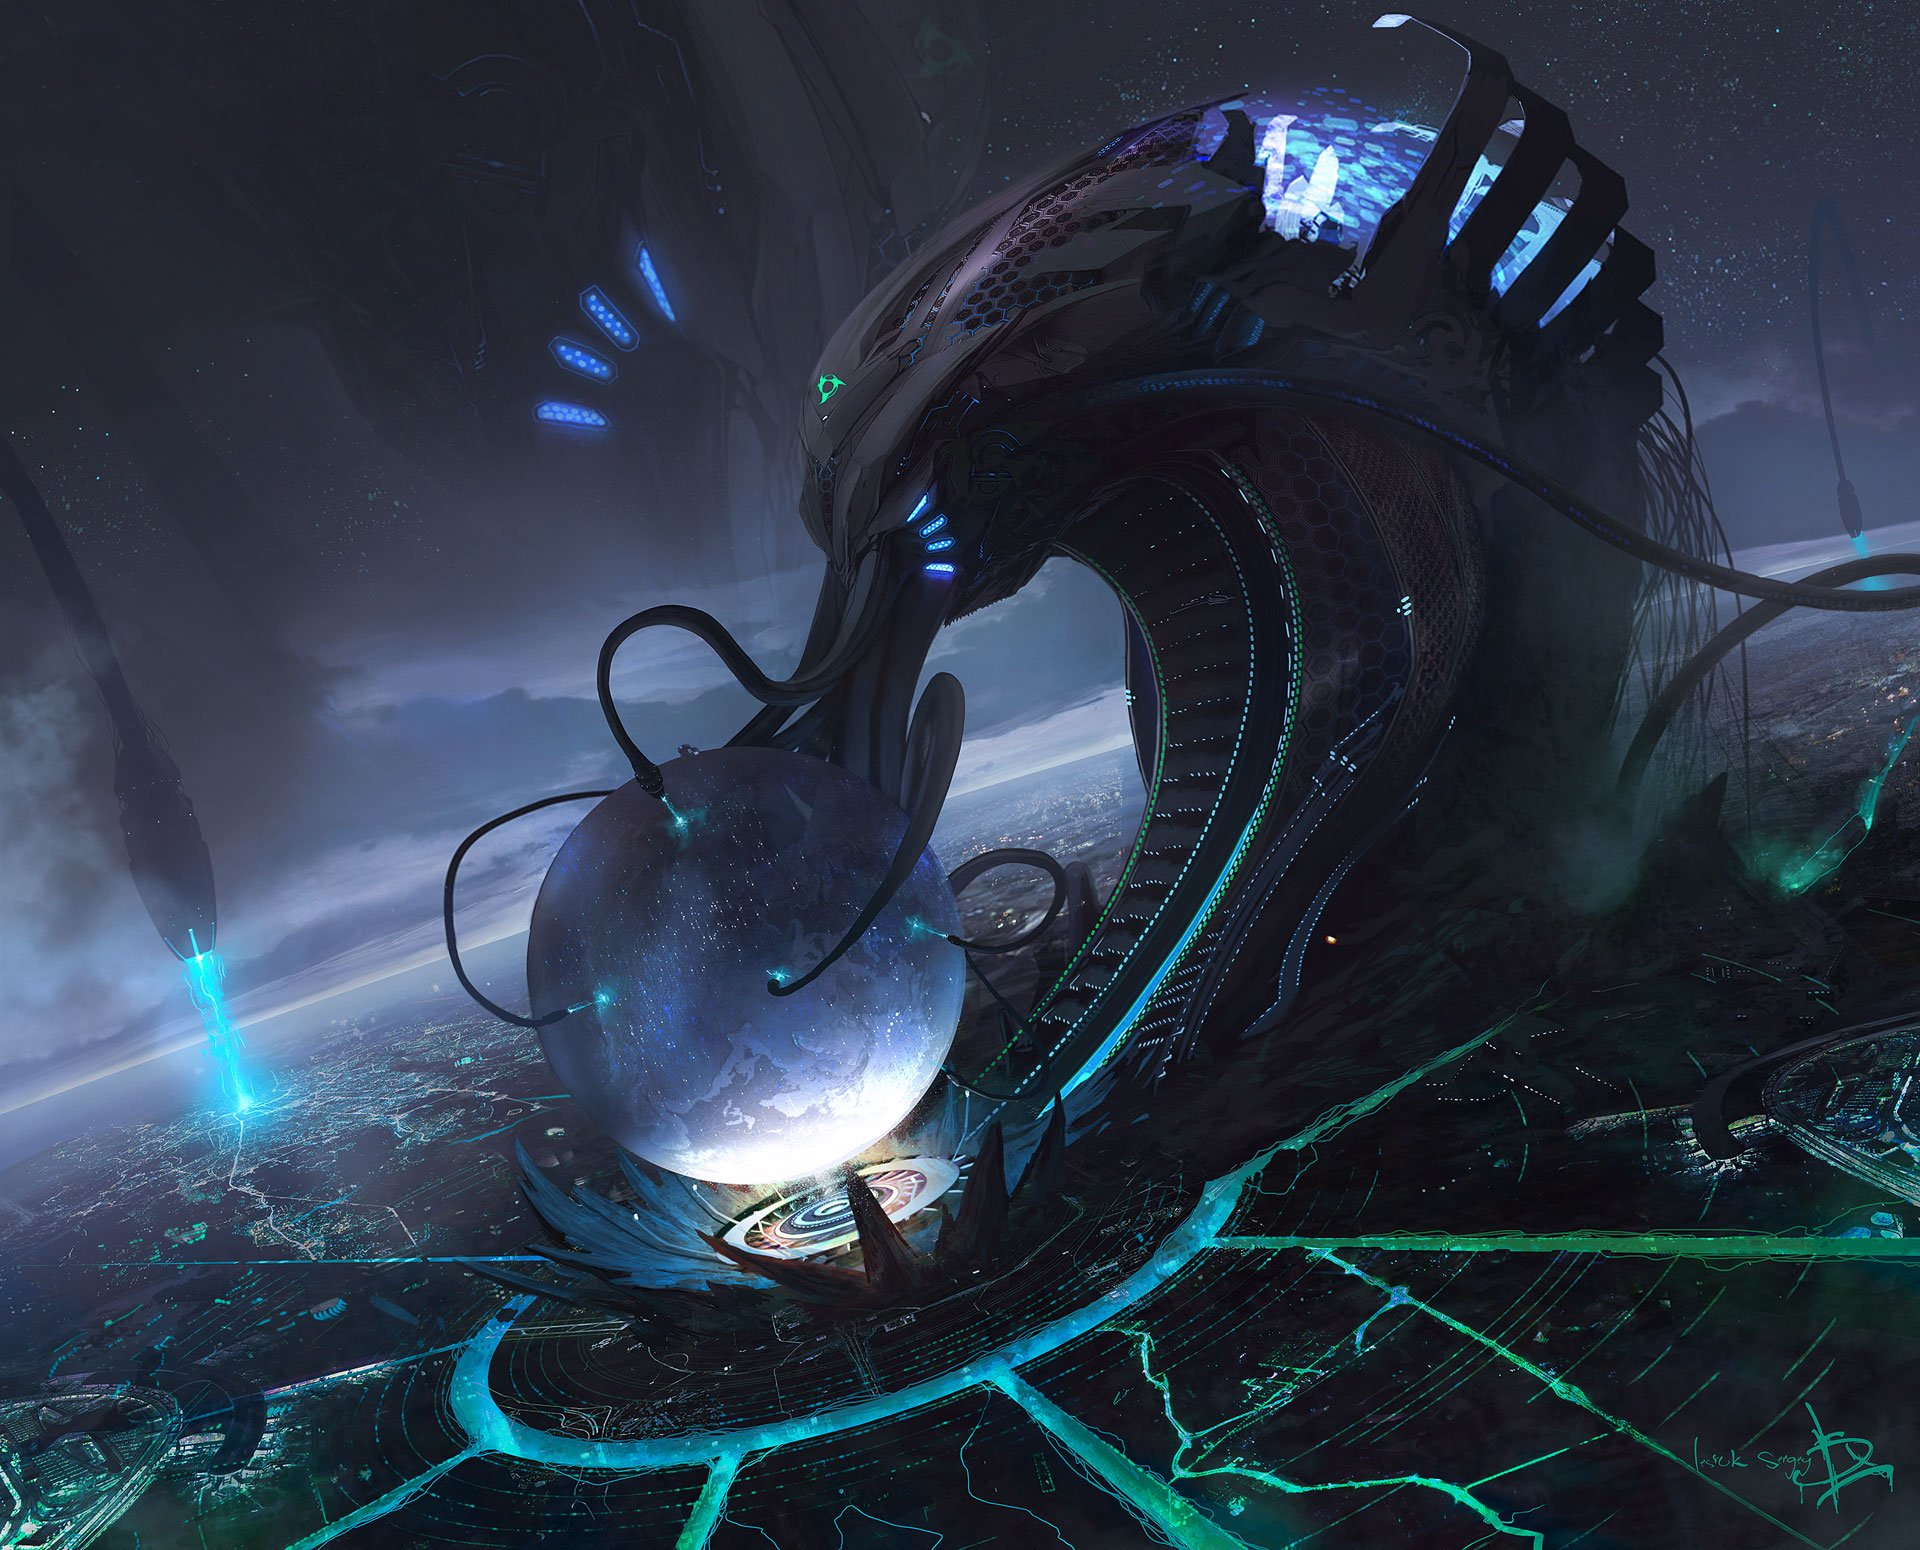 Sci-fi Wallpaper of the week #40 - Concept art, Sci-fi ...